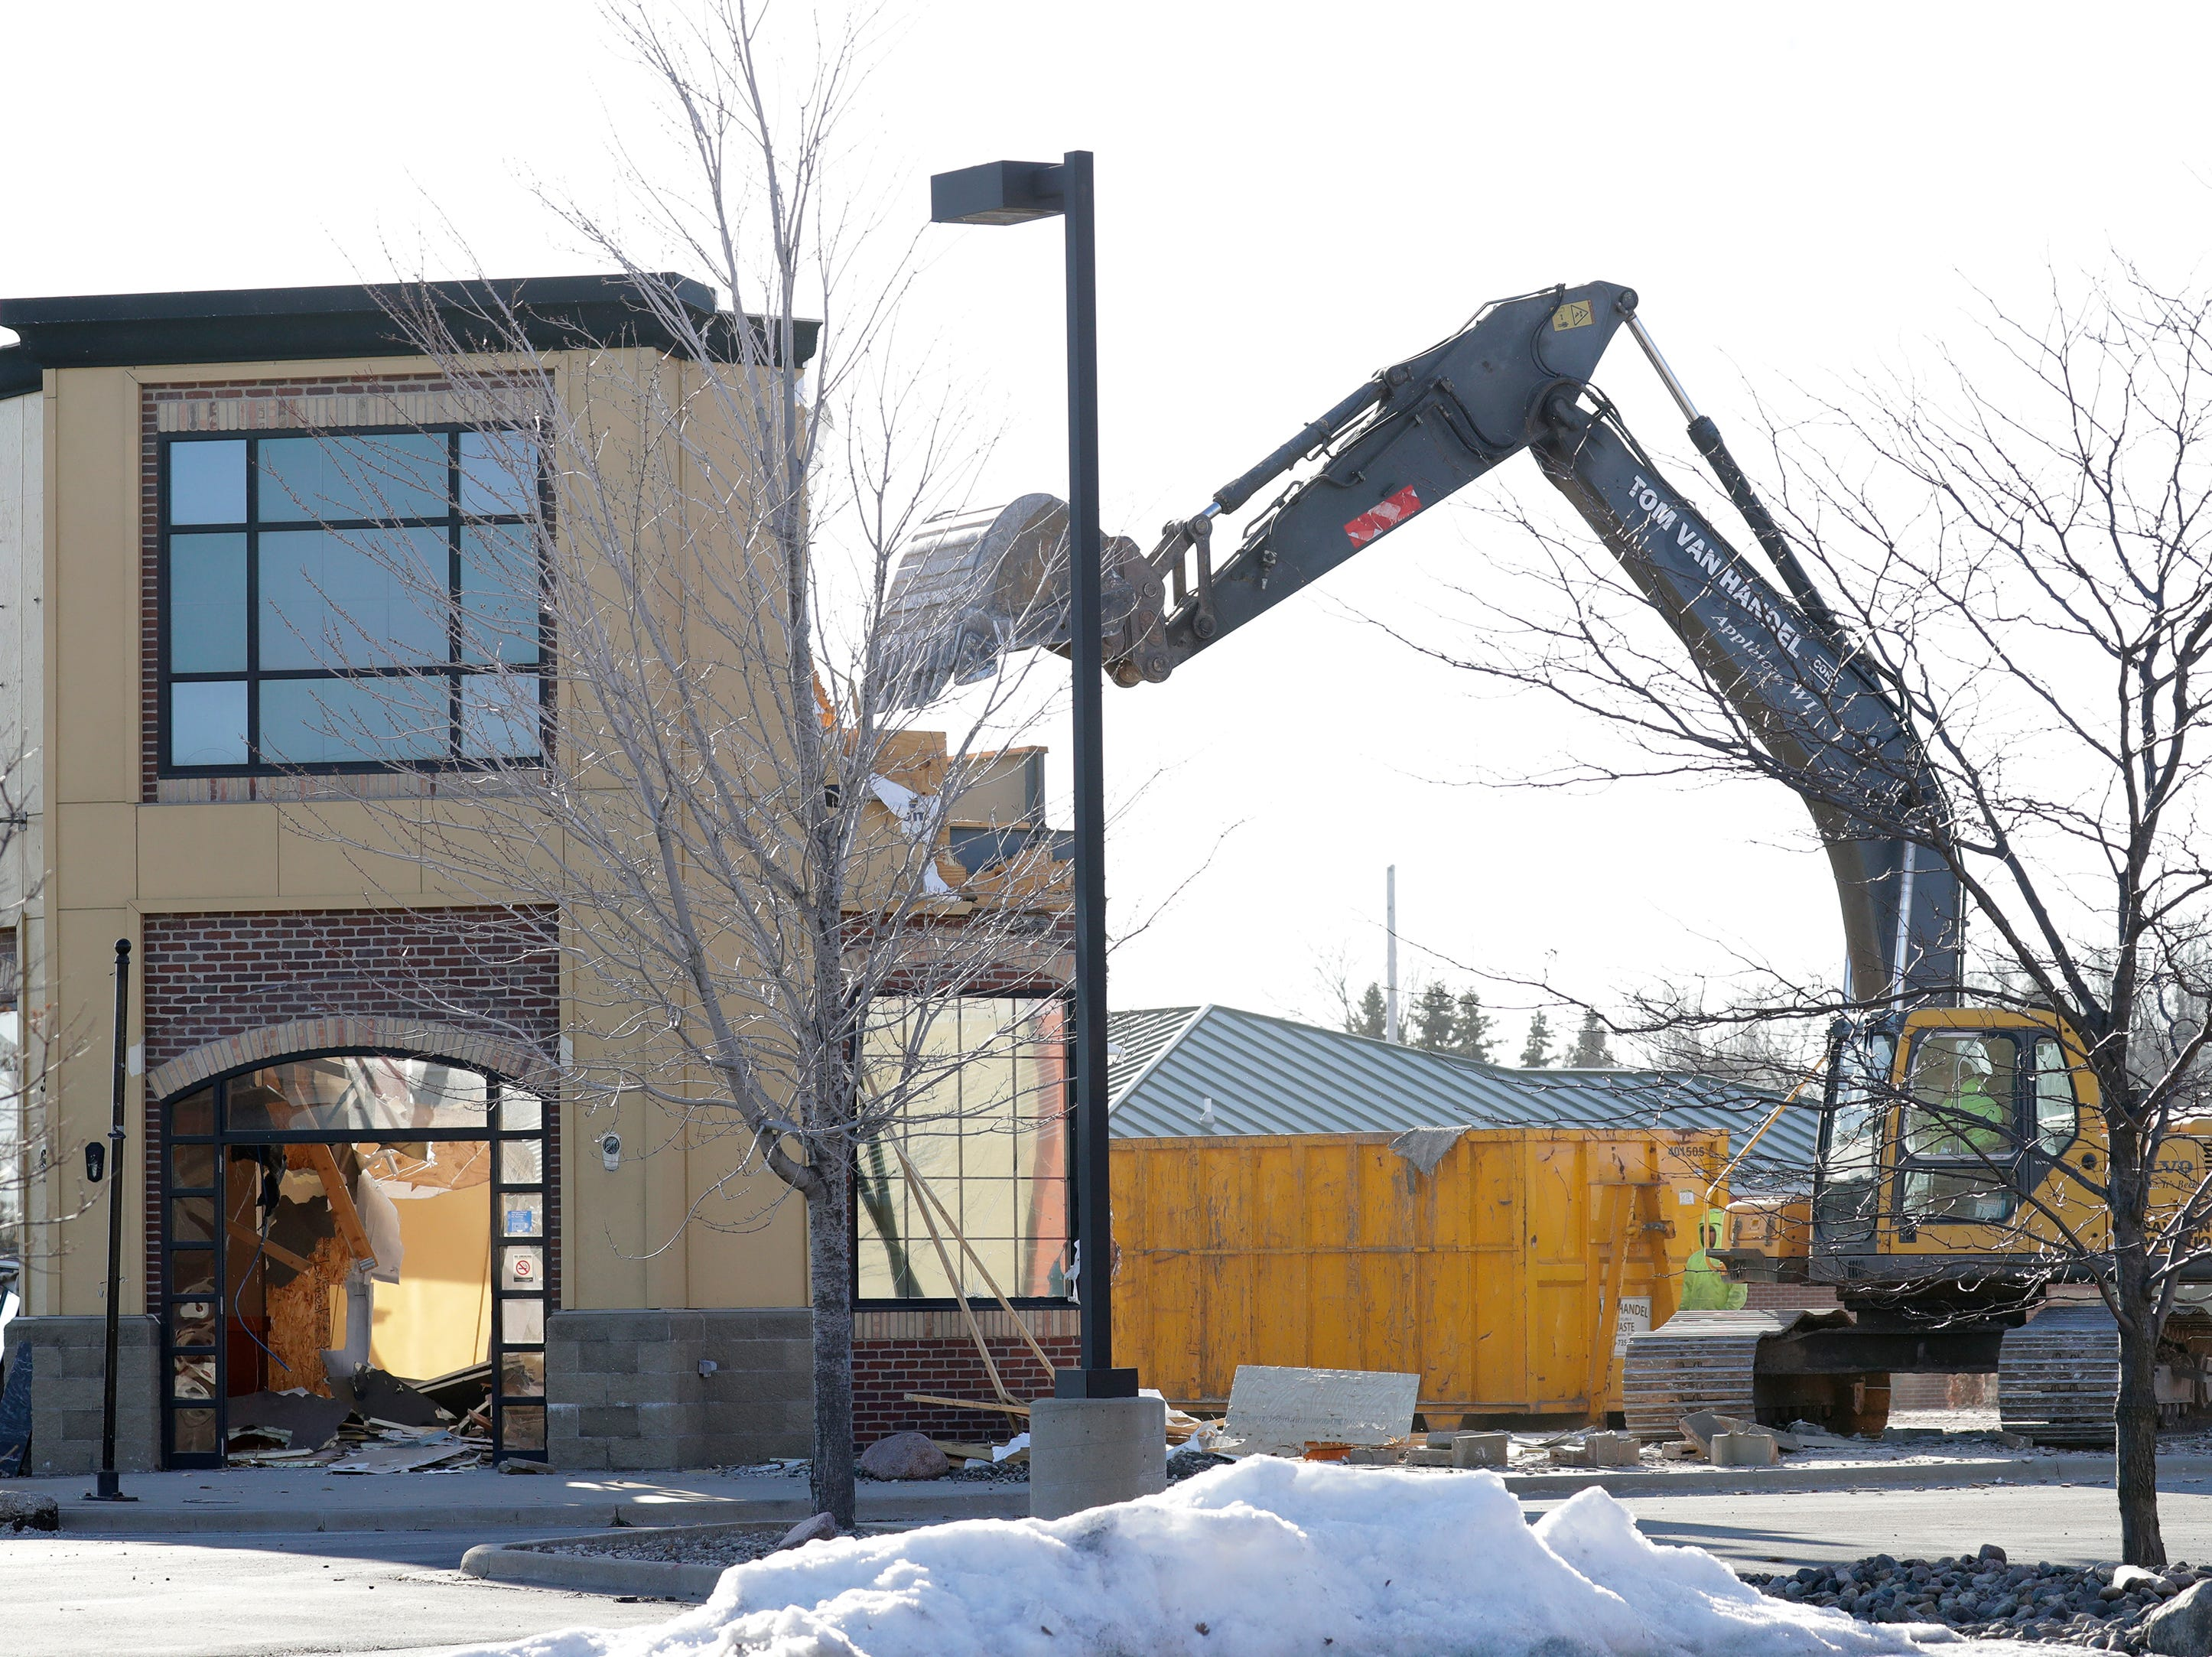 Tom Van Handel Corporation excavates the former Parma restaurant Monday, March 25, 2019, in Grand Chute, Wis. The location, 3775 W. College Ave., is the future site of a Chick-fil-A restaurant.Dan Powers/USA TODAY NETWORK-Wisconsin